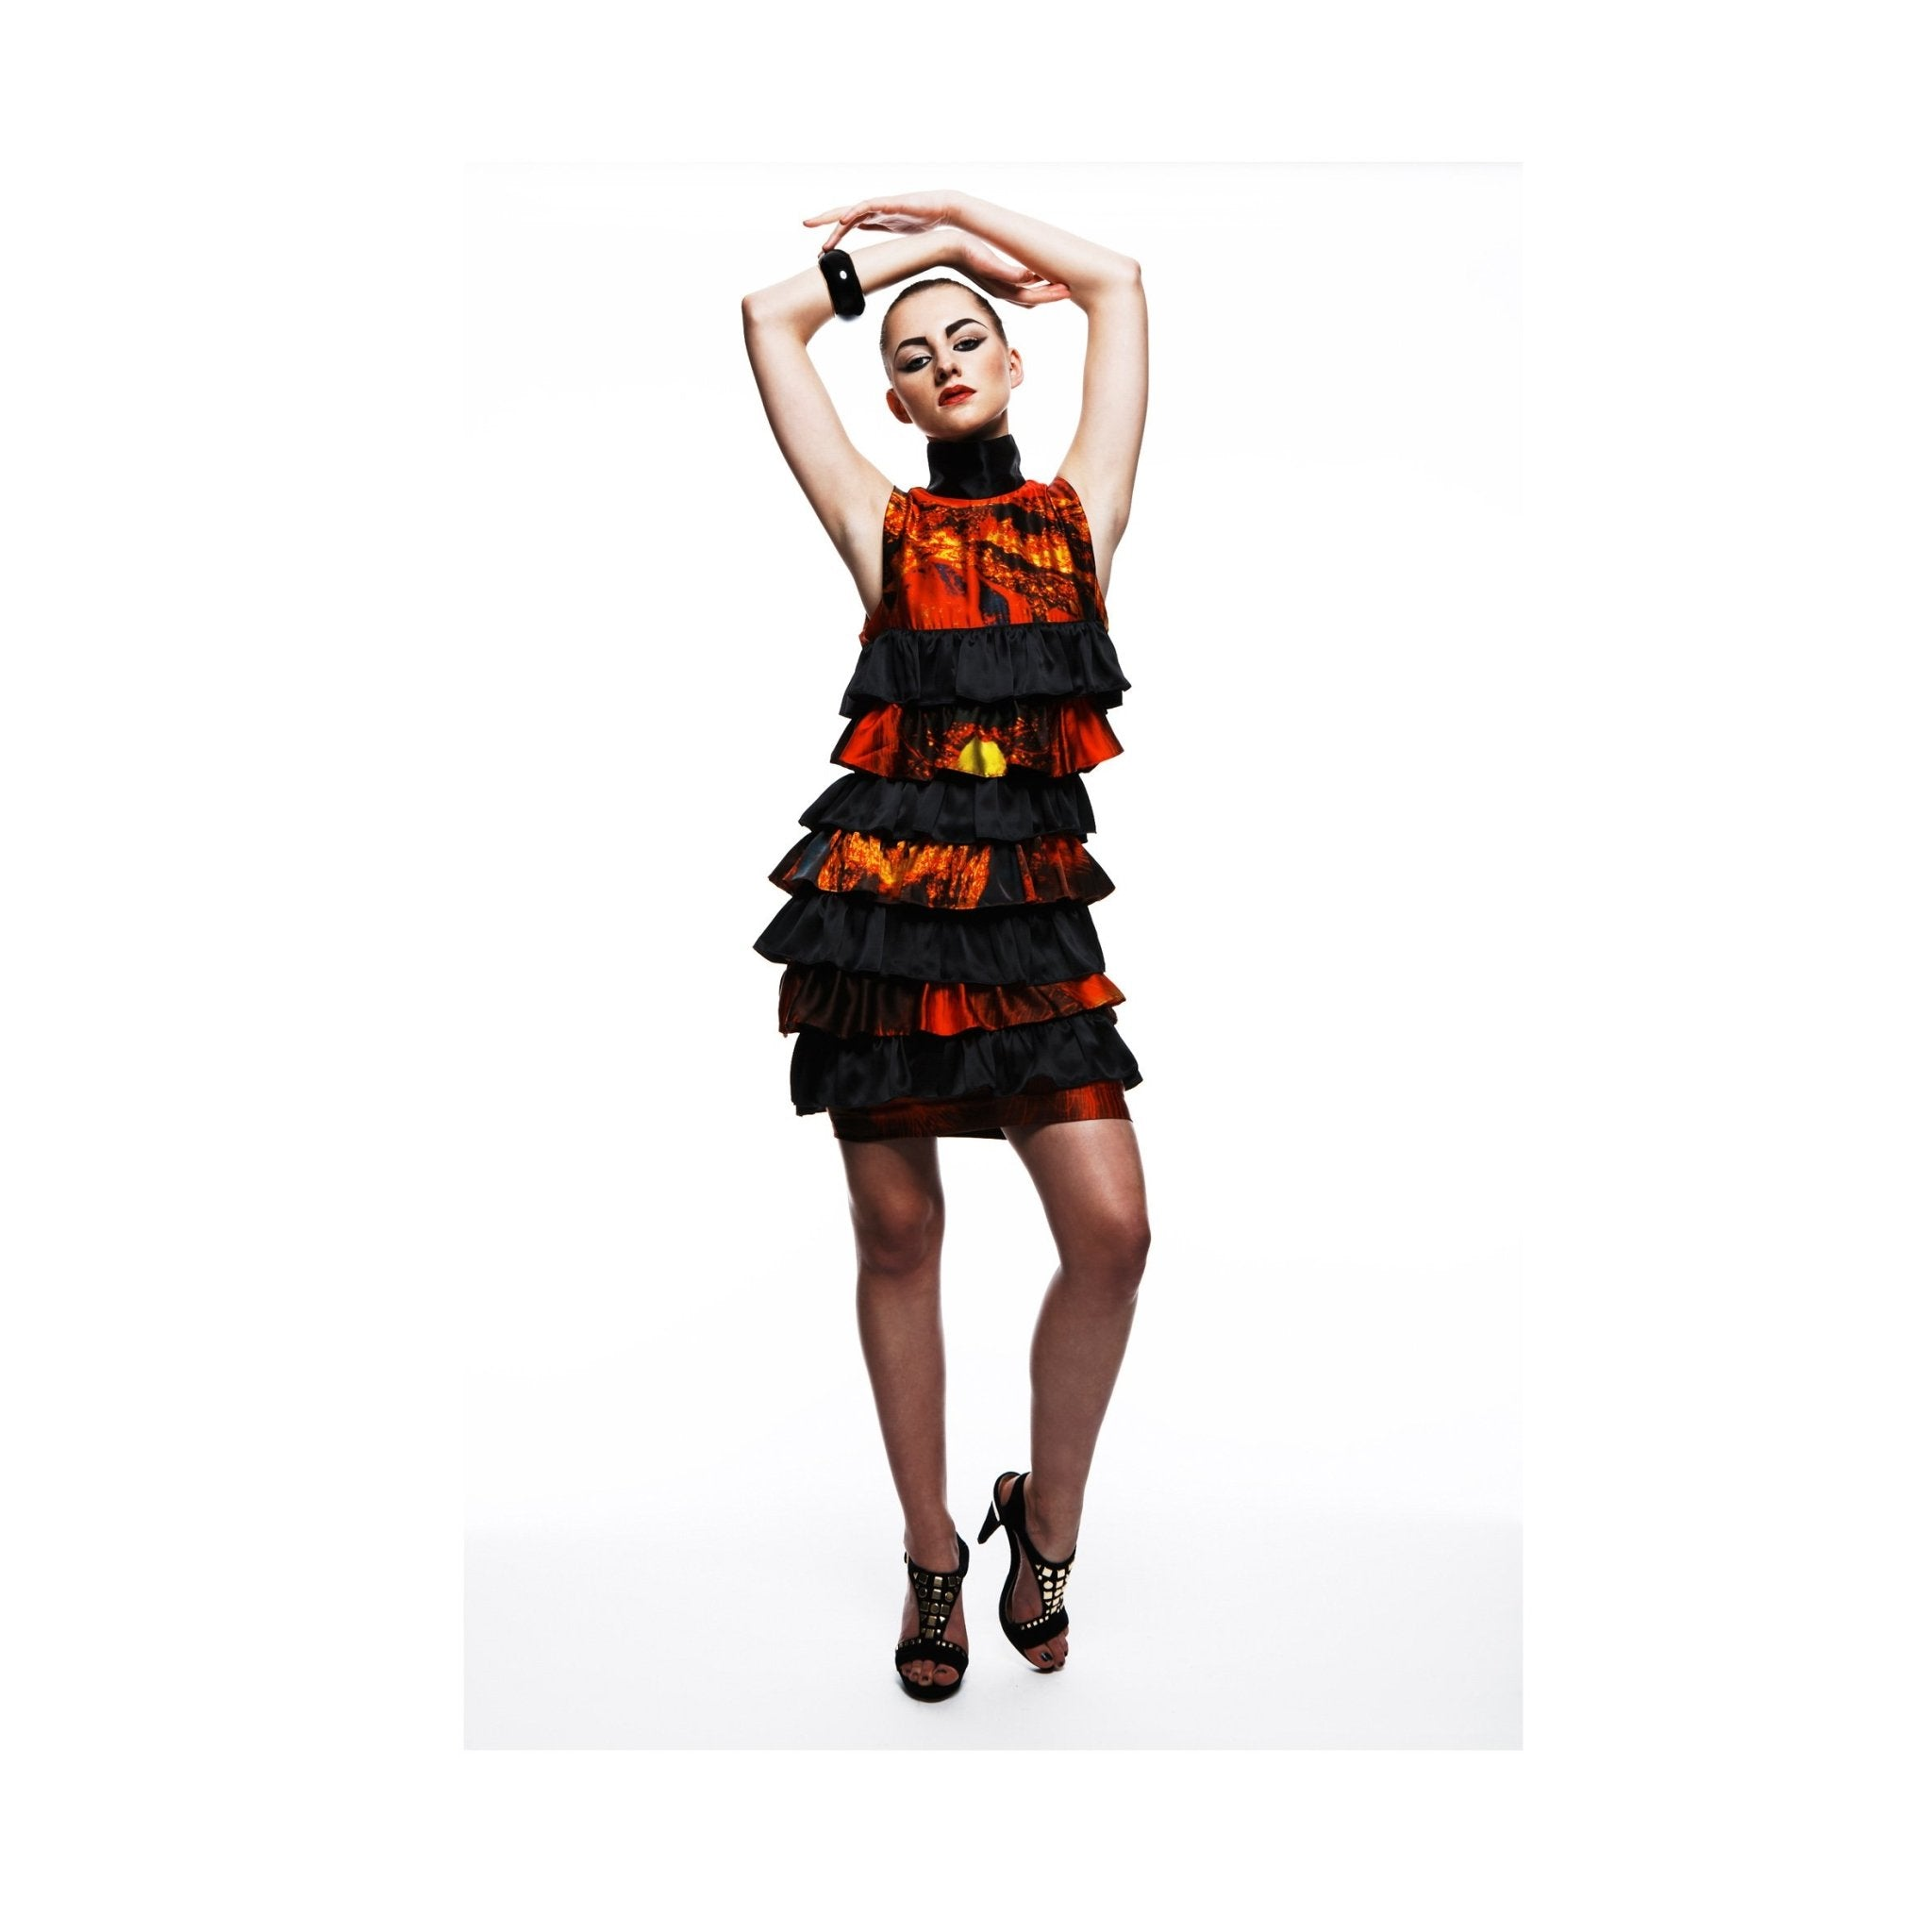 LAVA FRILL DRESS - The Clothing LoungeTramp in Disguise